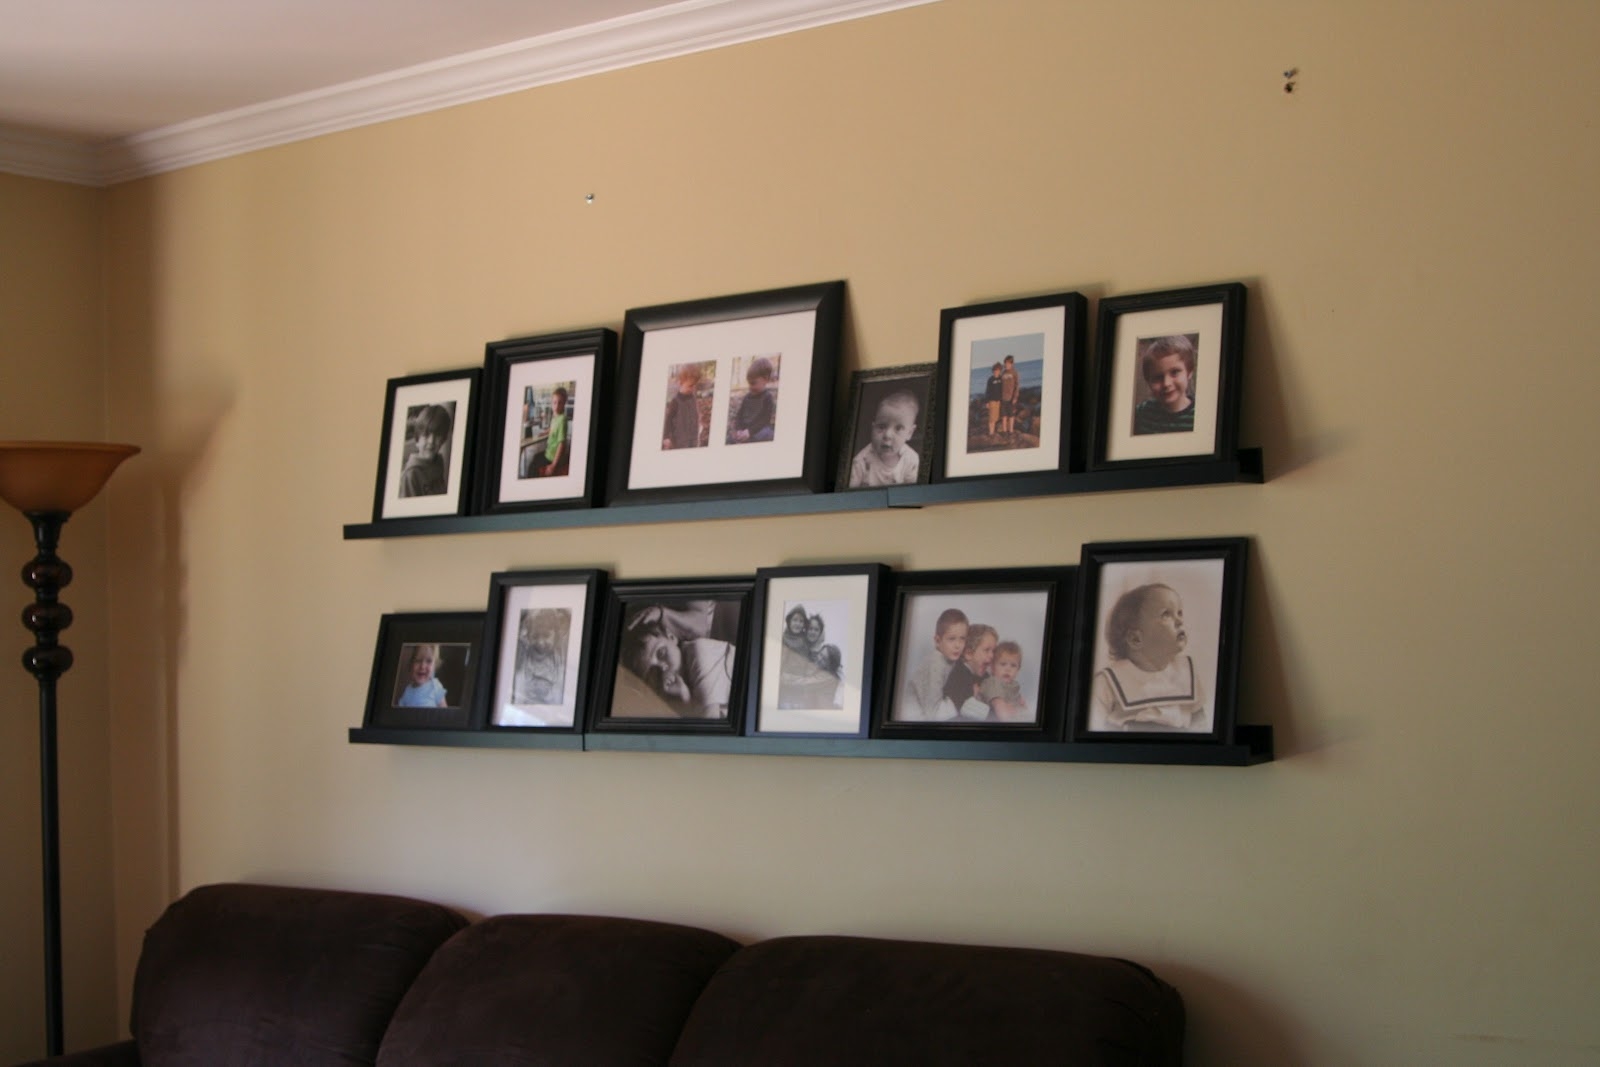 Ikea Ribba Picture Ledge Hanging Proving We Can